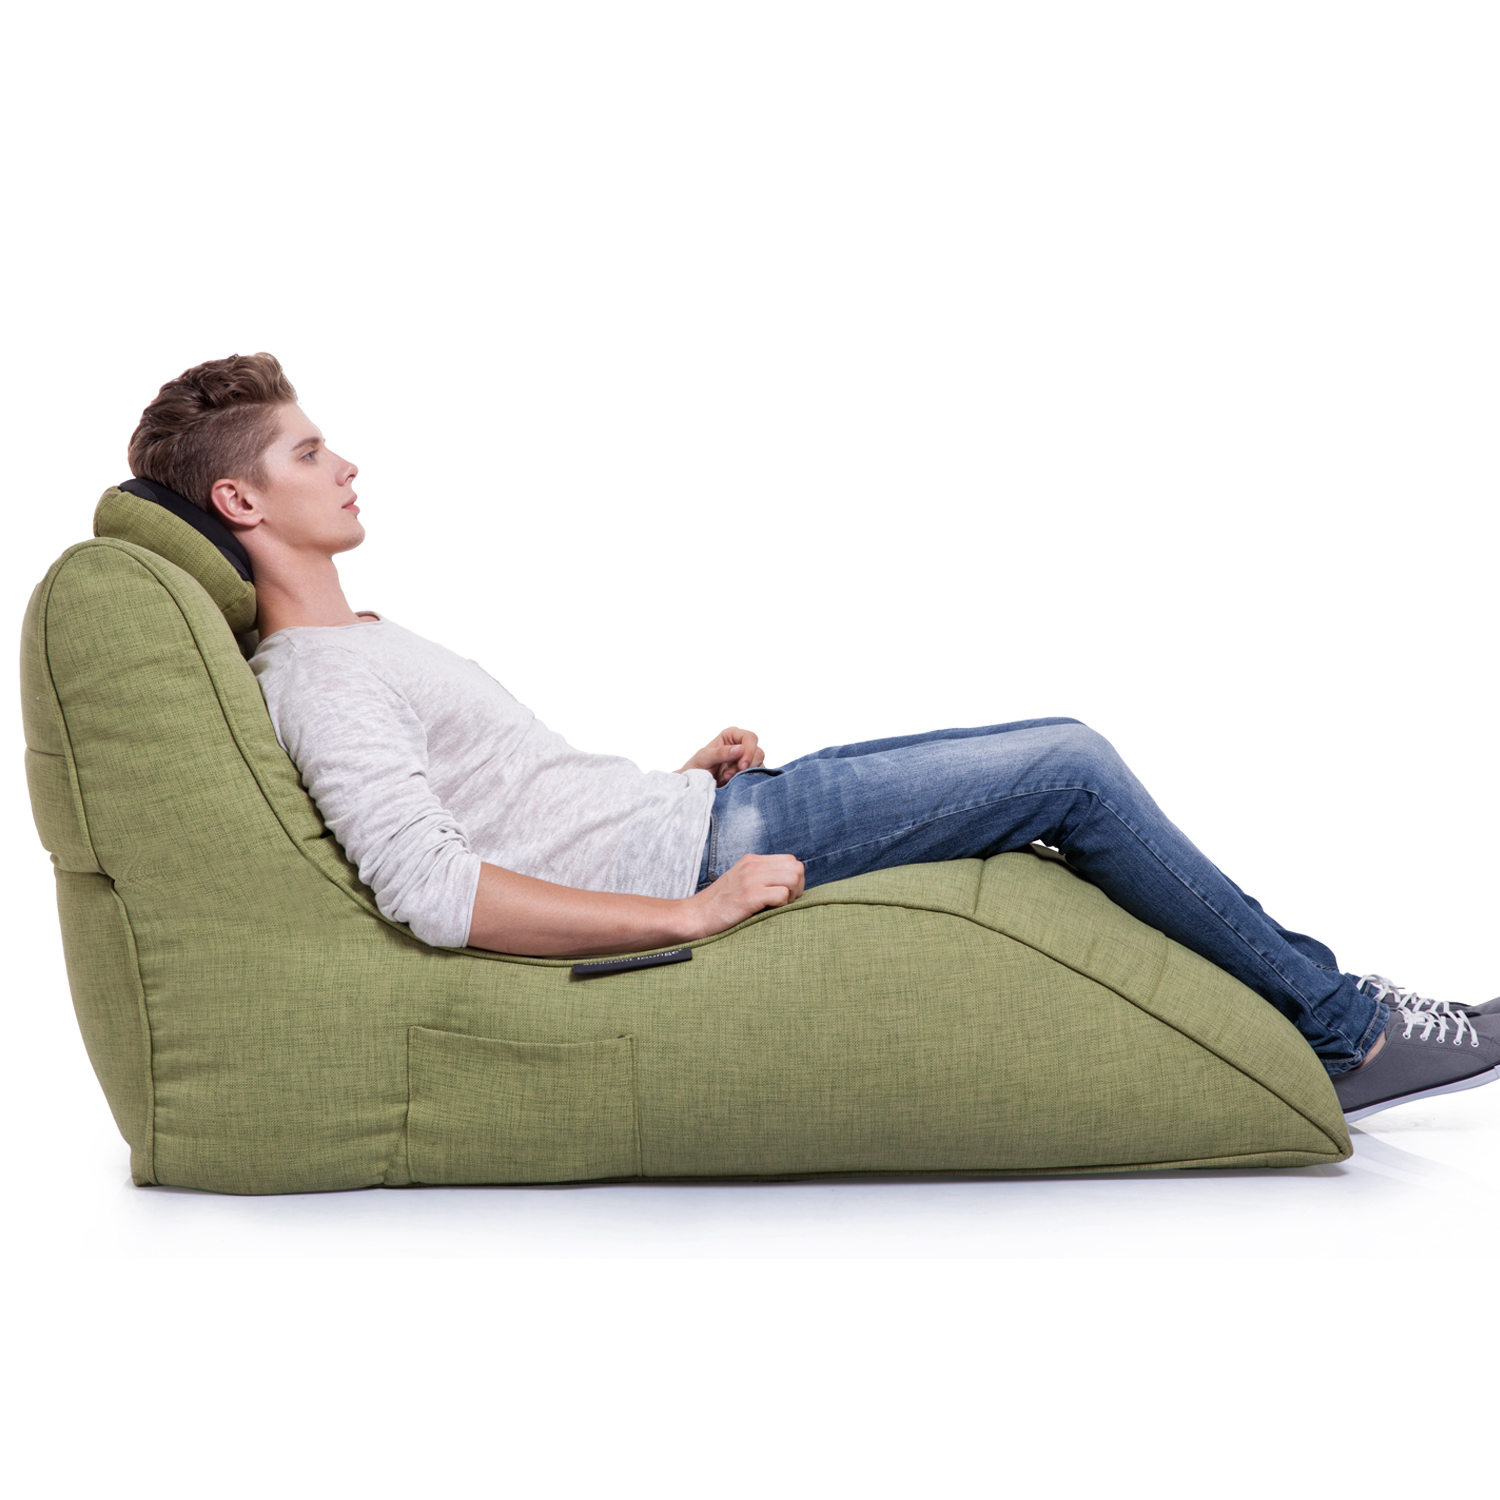 Home Cinema Indoor Bean Bag Avatar Lounger Lime Citrus